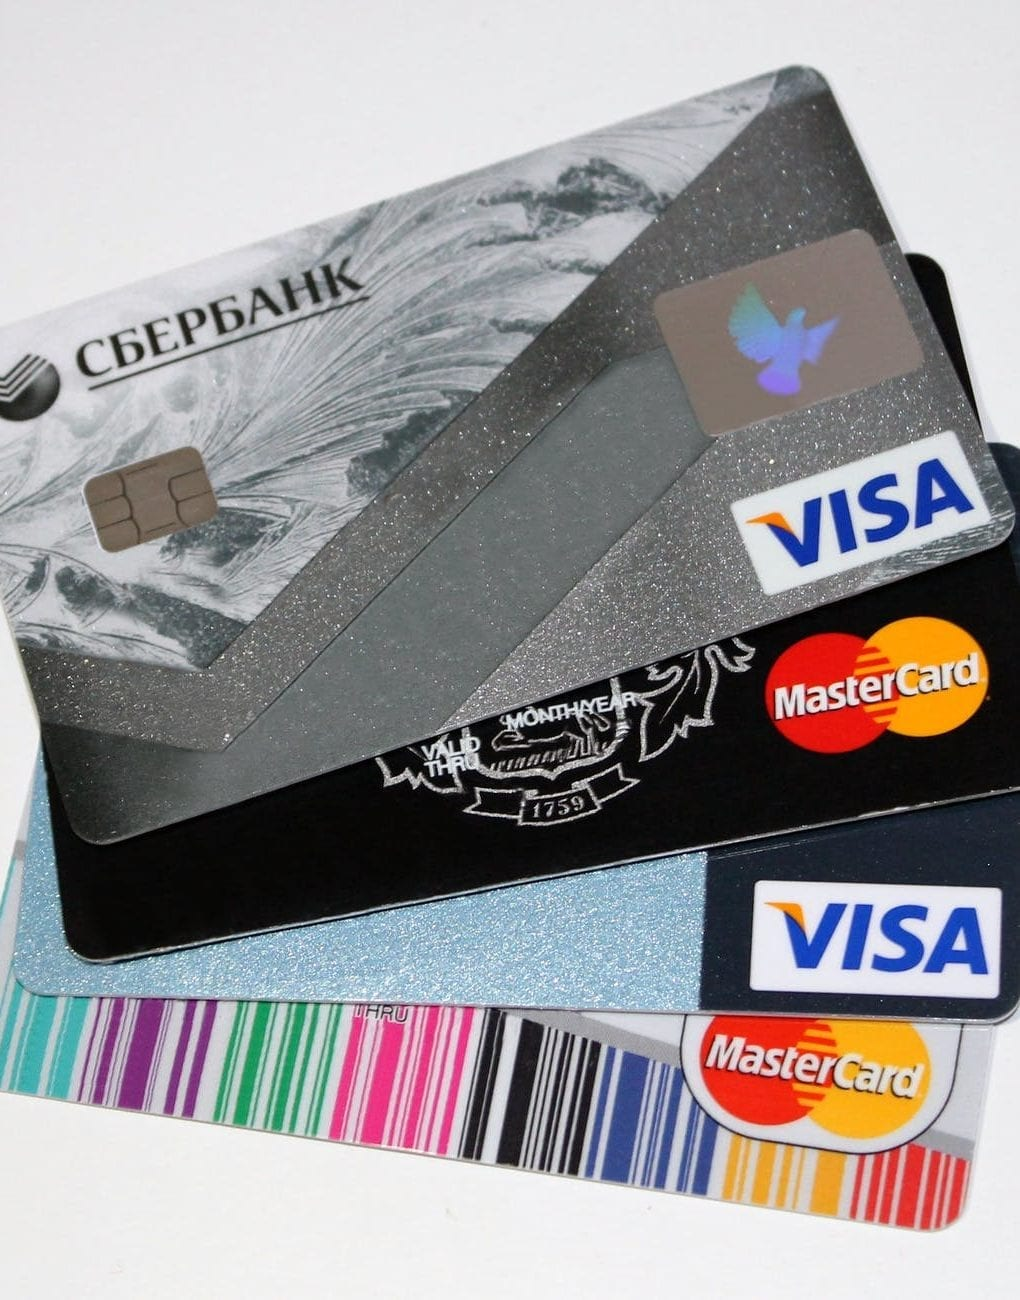 Debit / Credit Cards